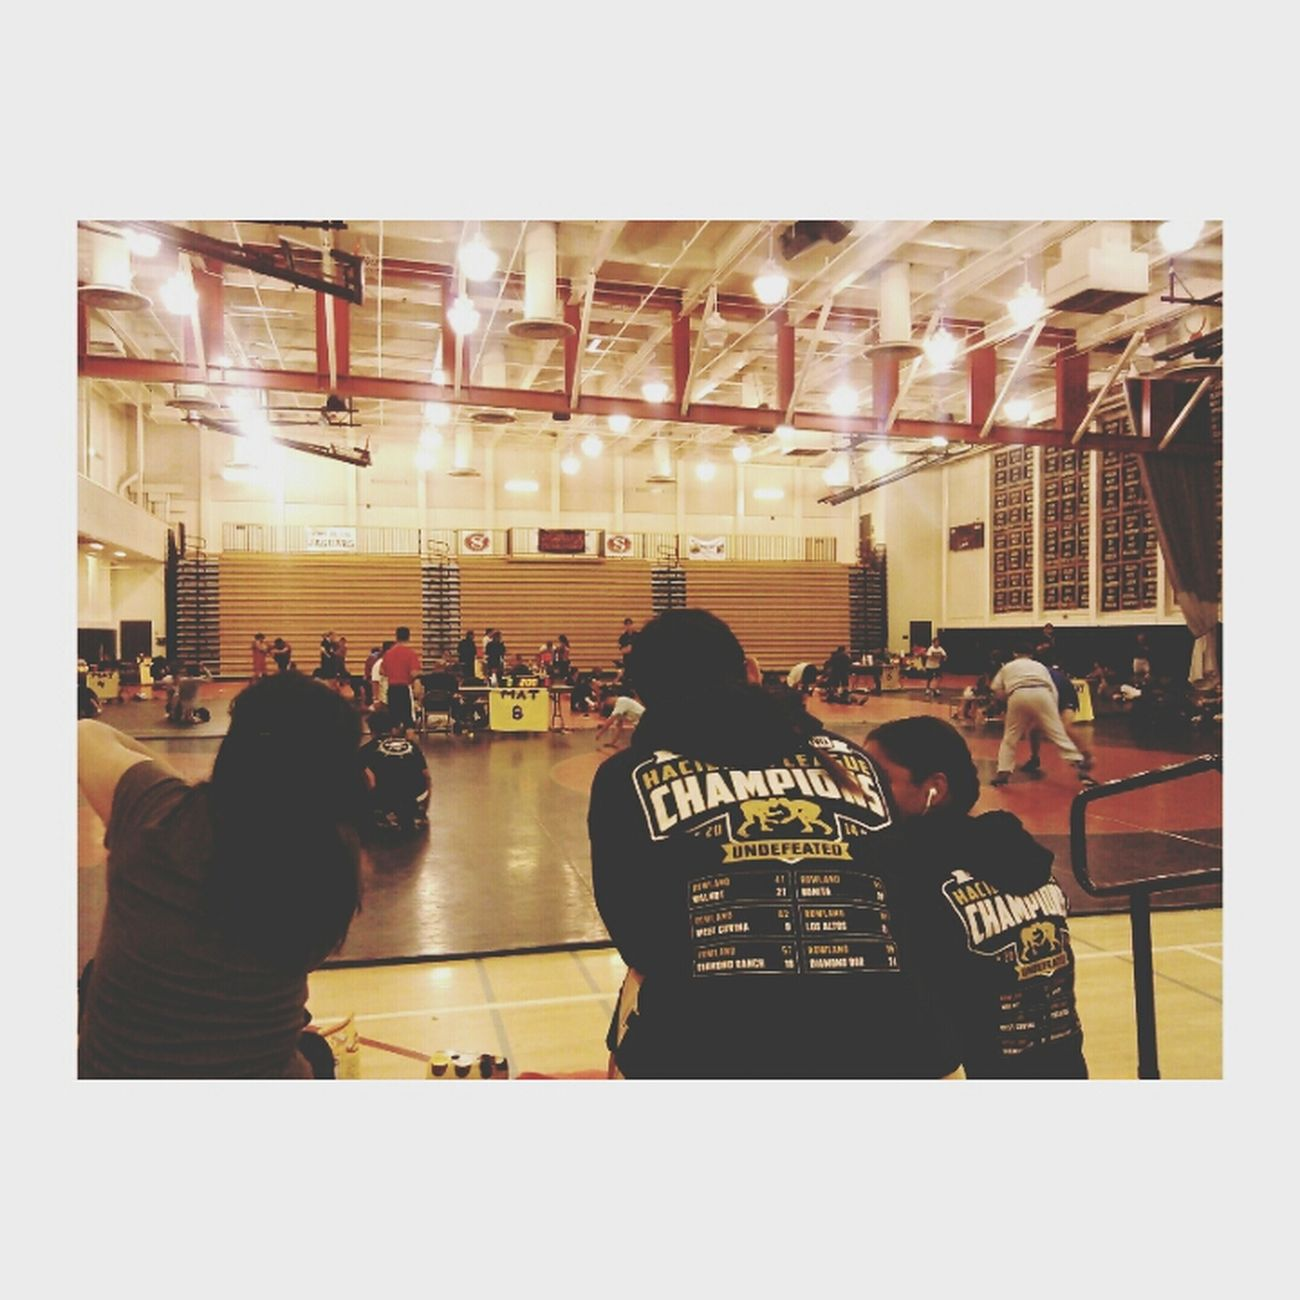 Wrestling today =)